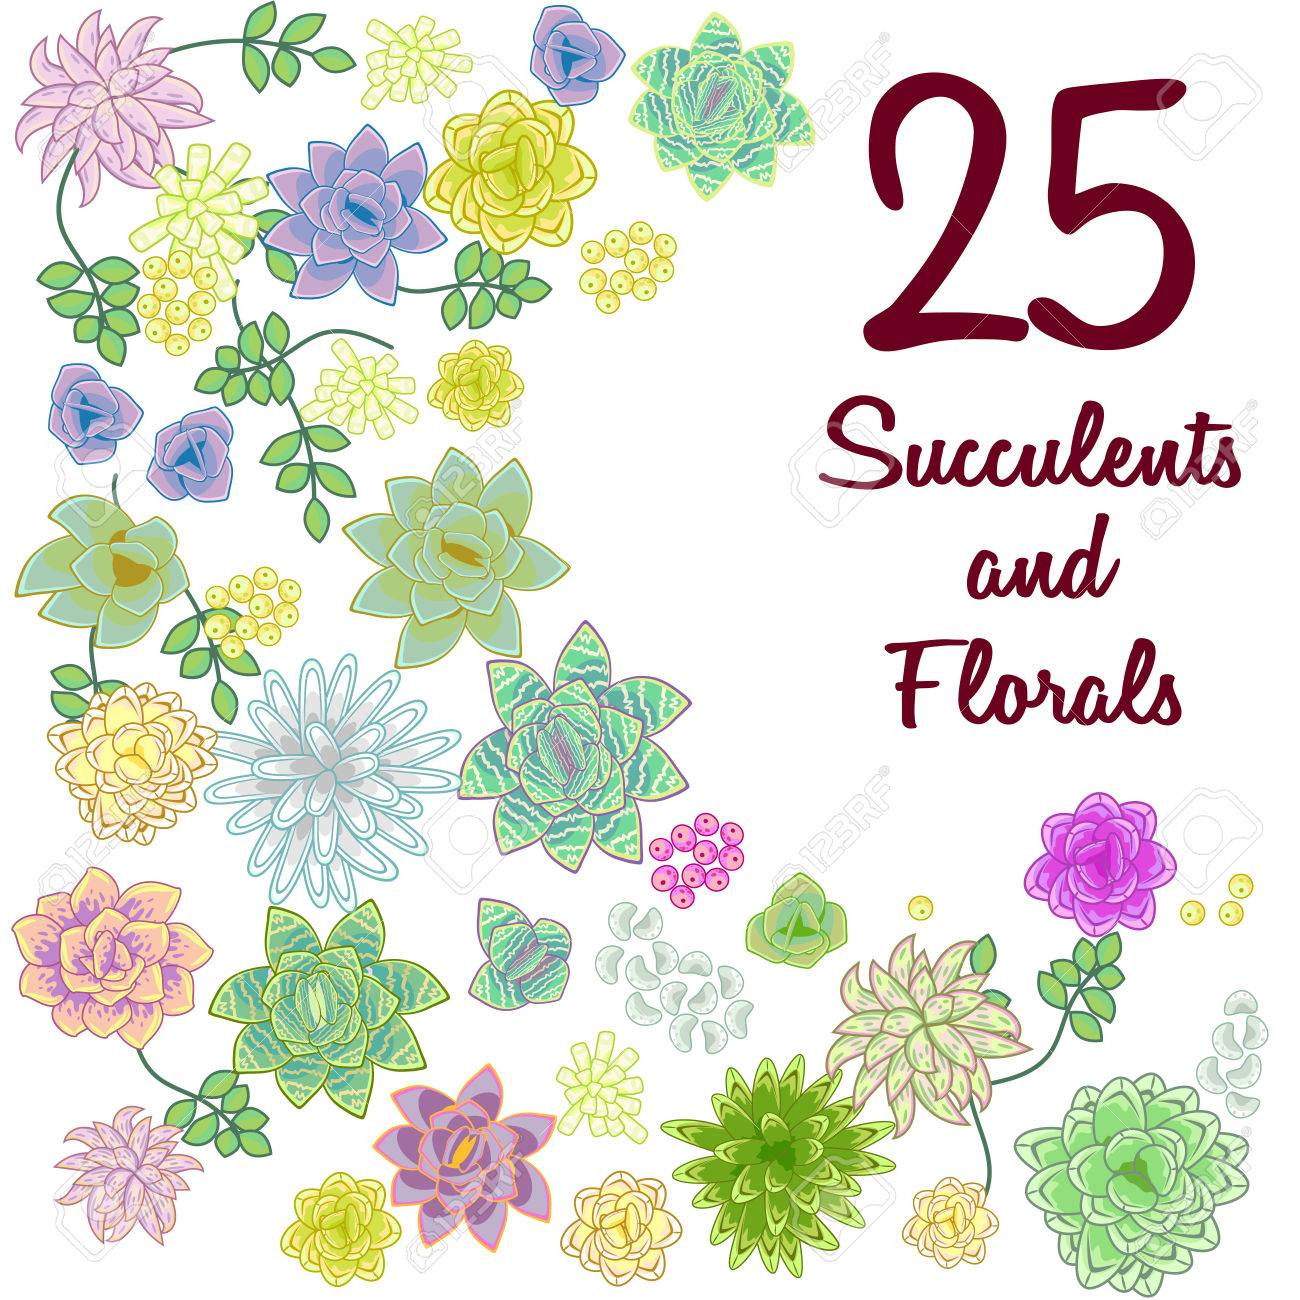 Succulent Garden Clip Art Flowers Element Set Floral Clipart